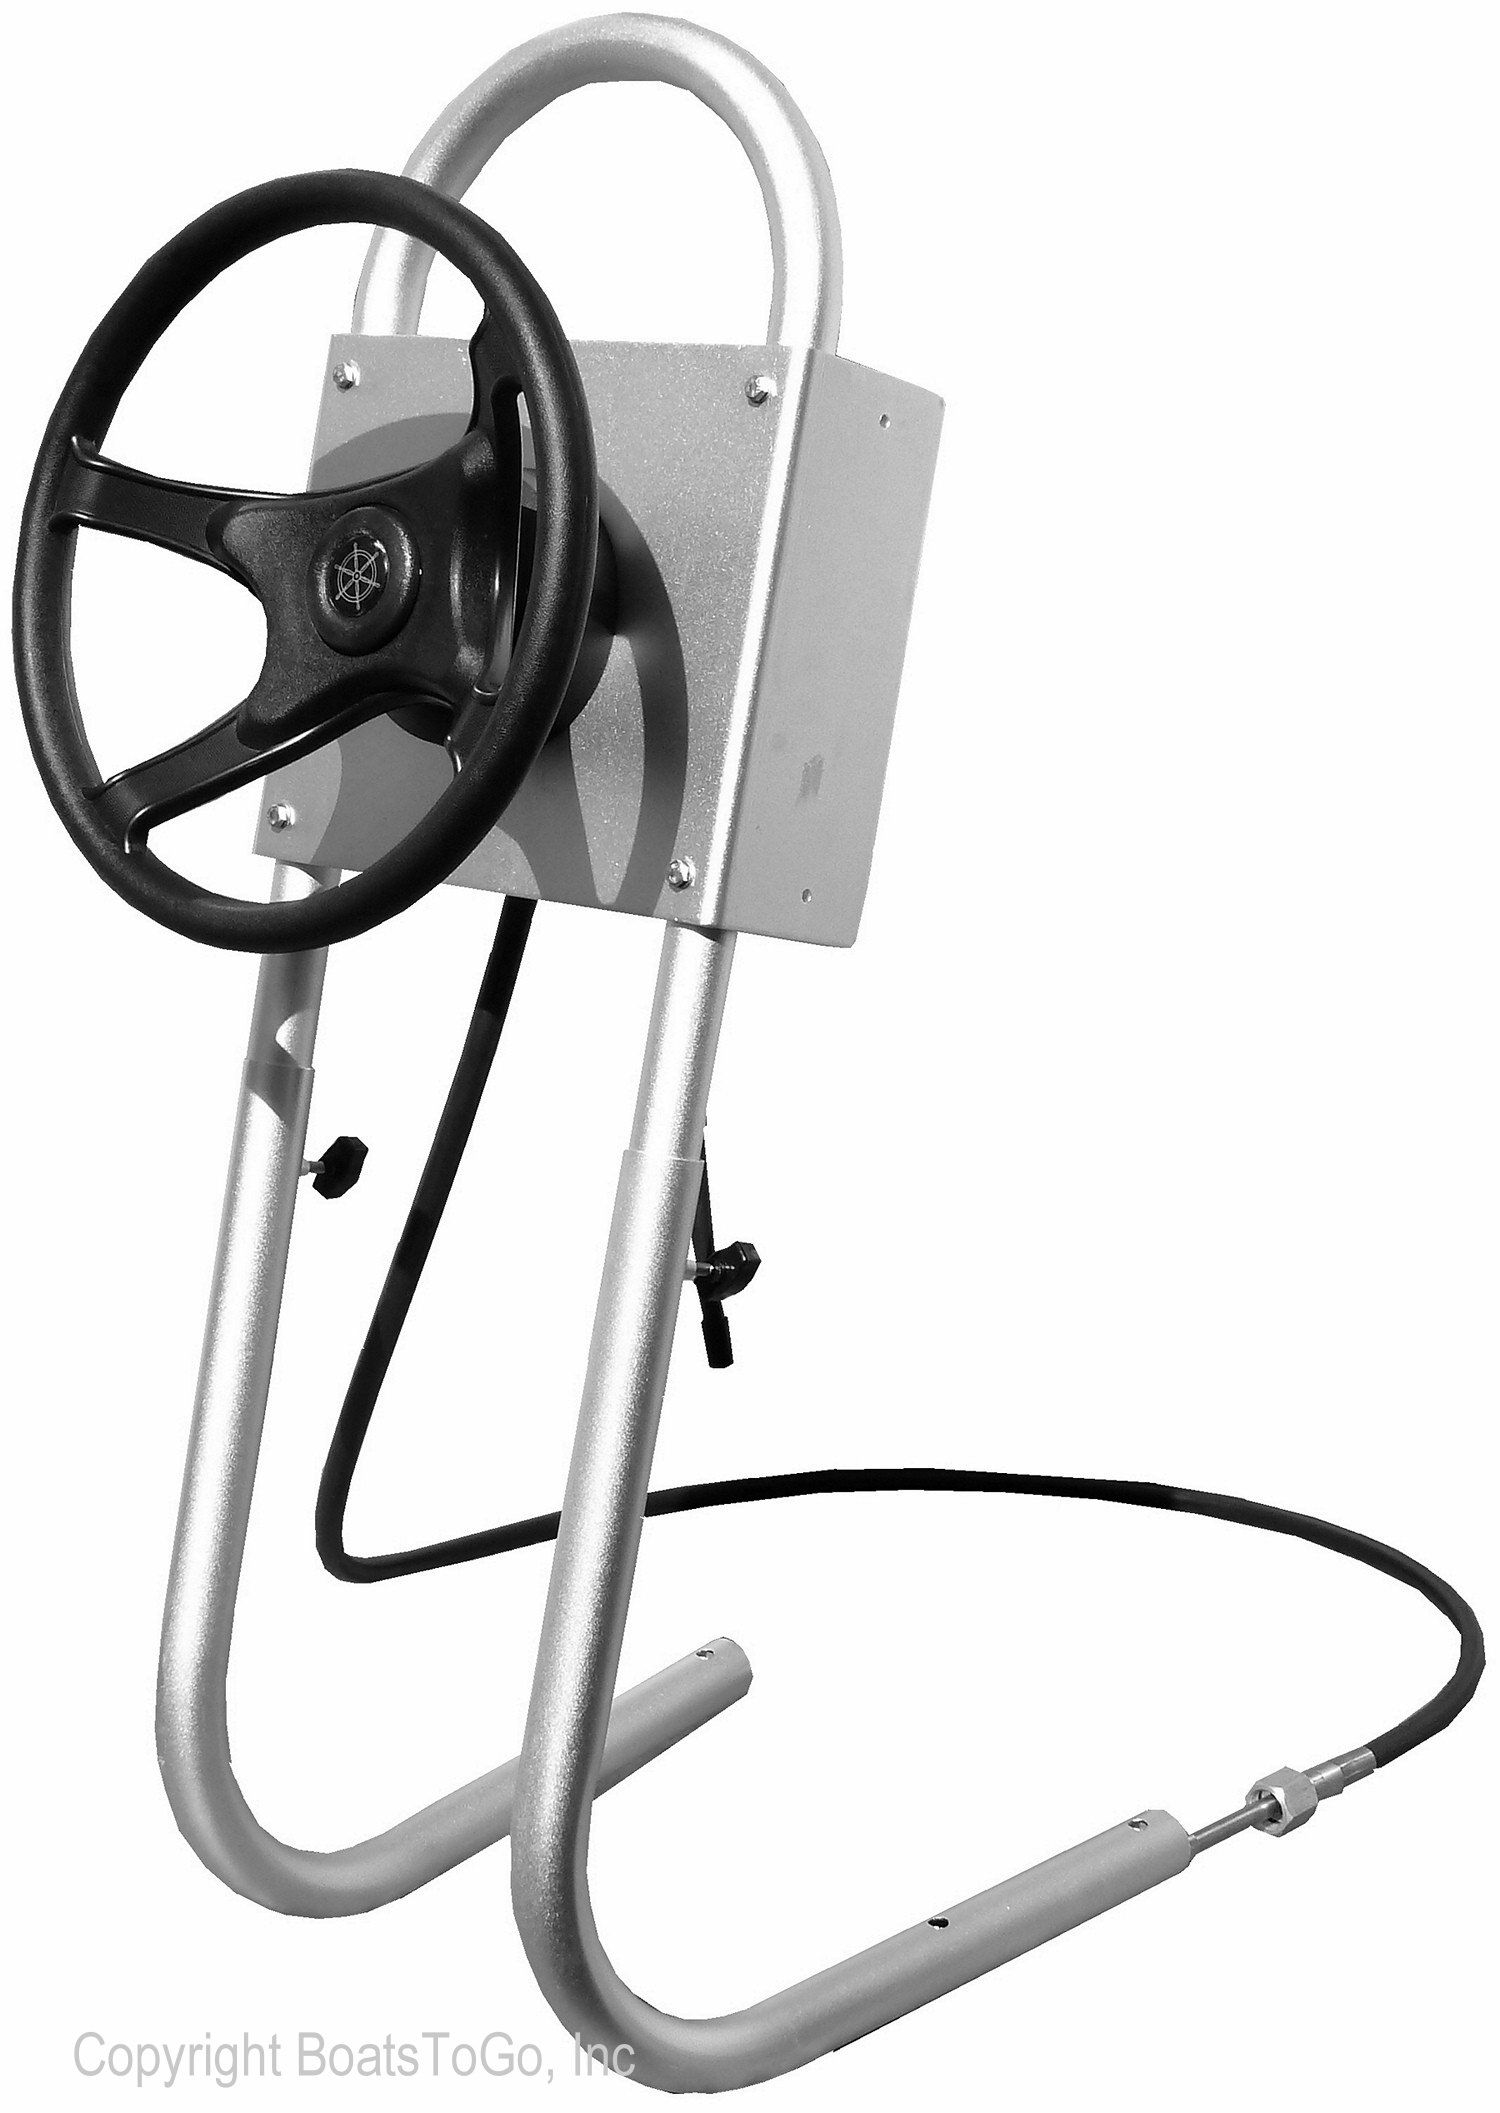 aluminium steering system for inflatable motor boats rib boats aluminium jon boats and small fiberglass boats helm calbe and wheel are included  [ 1500 x 2113 Pixel ]